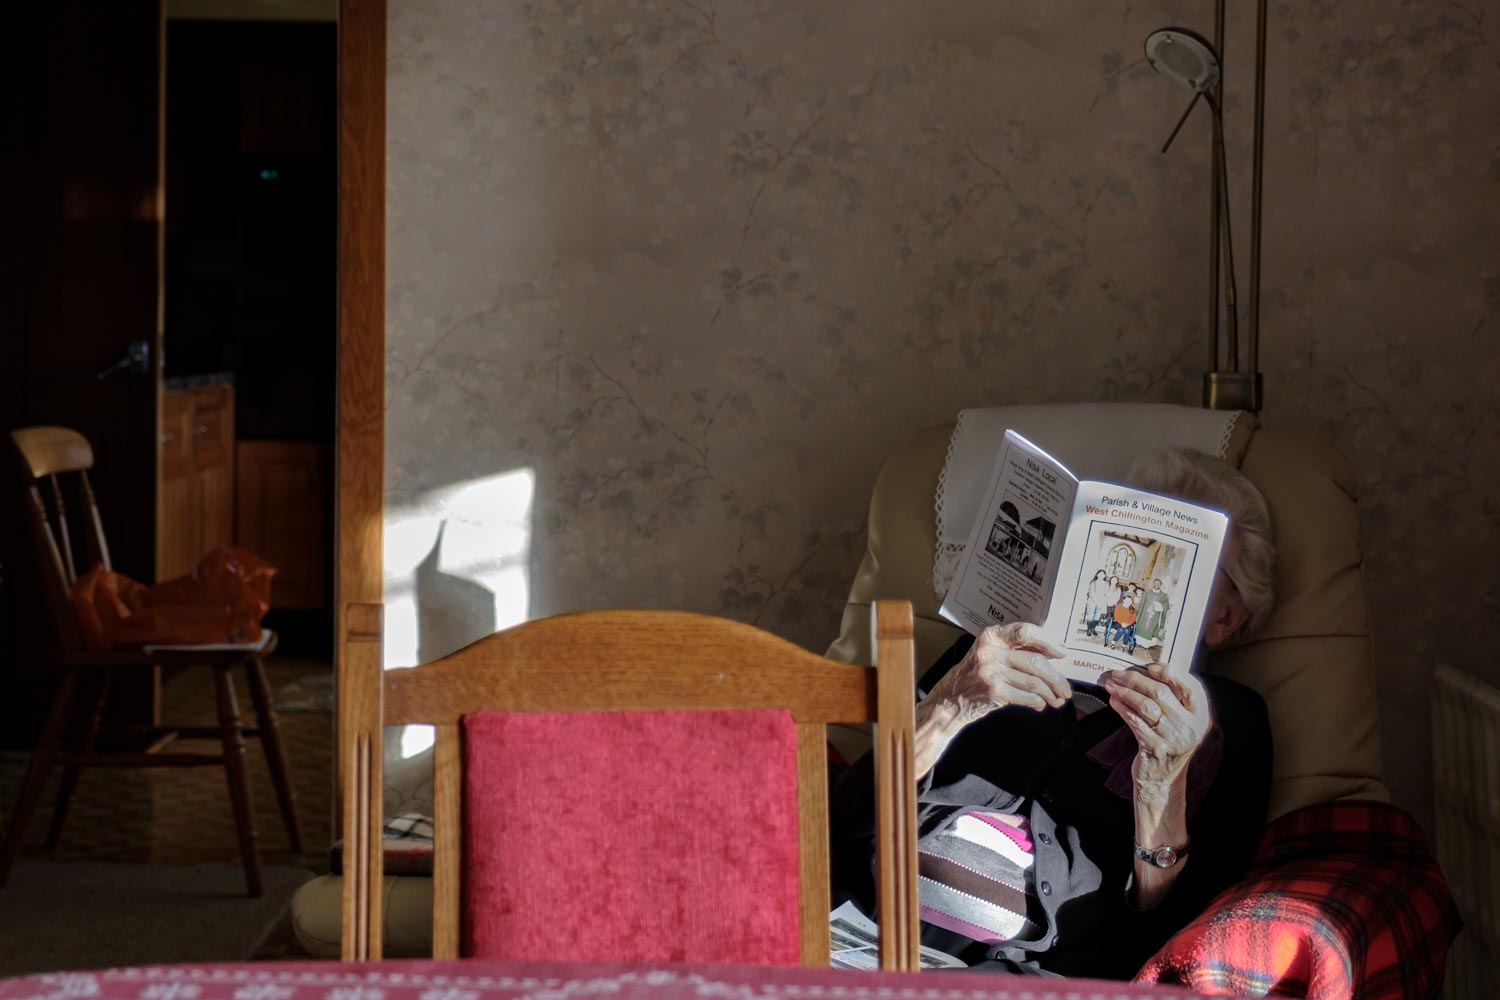 Older woman sitting in a chair with a book covering her face in the corner of living room.